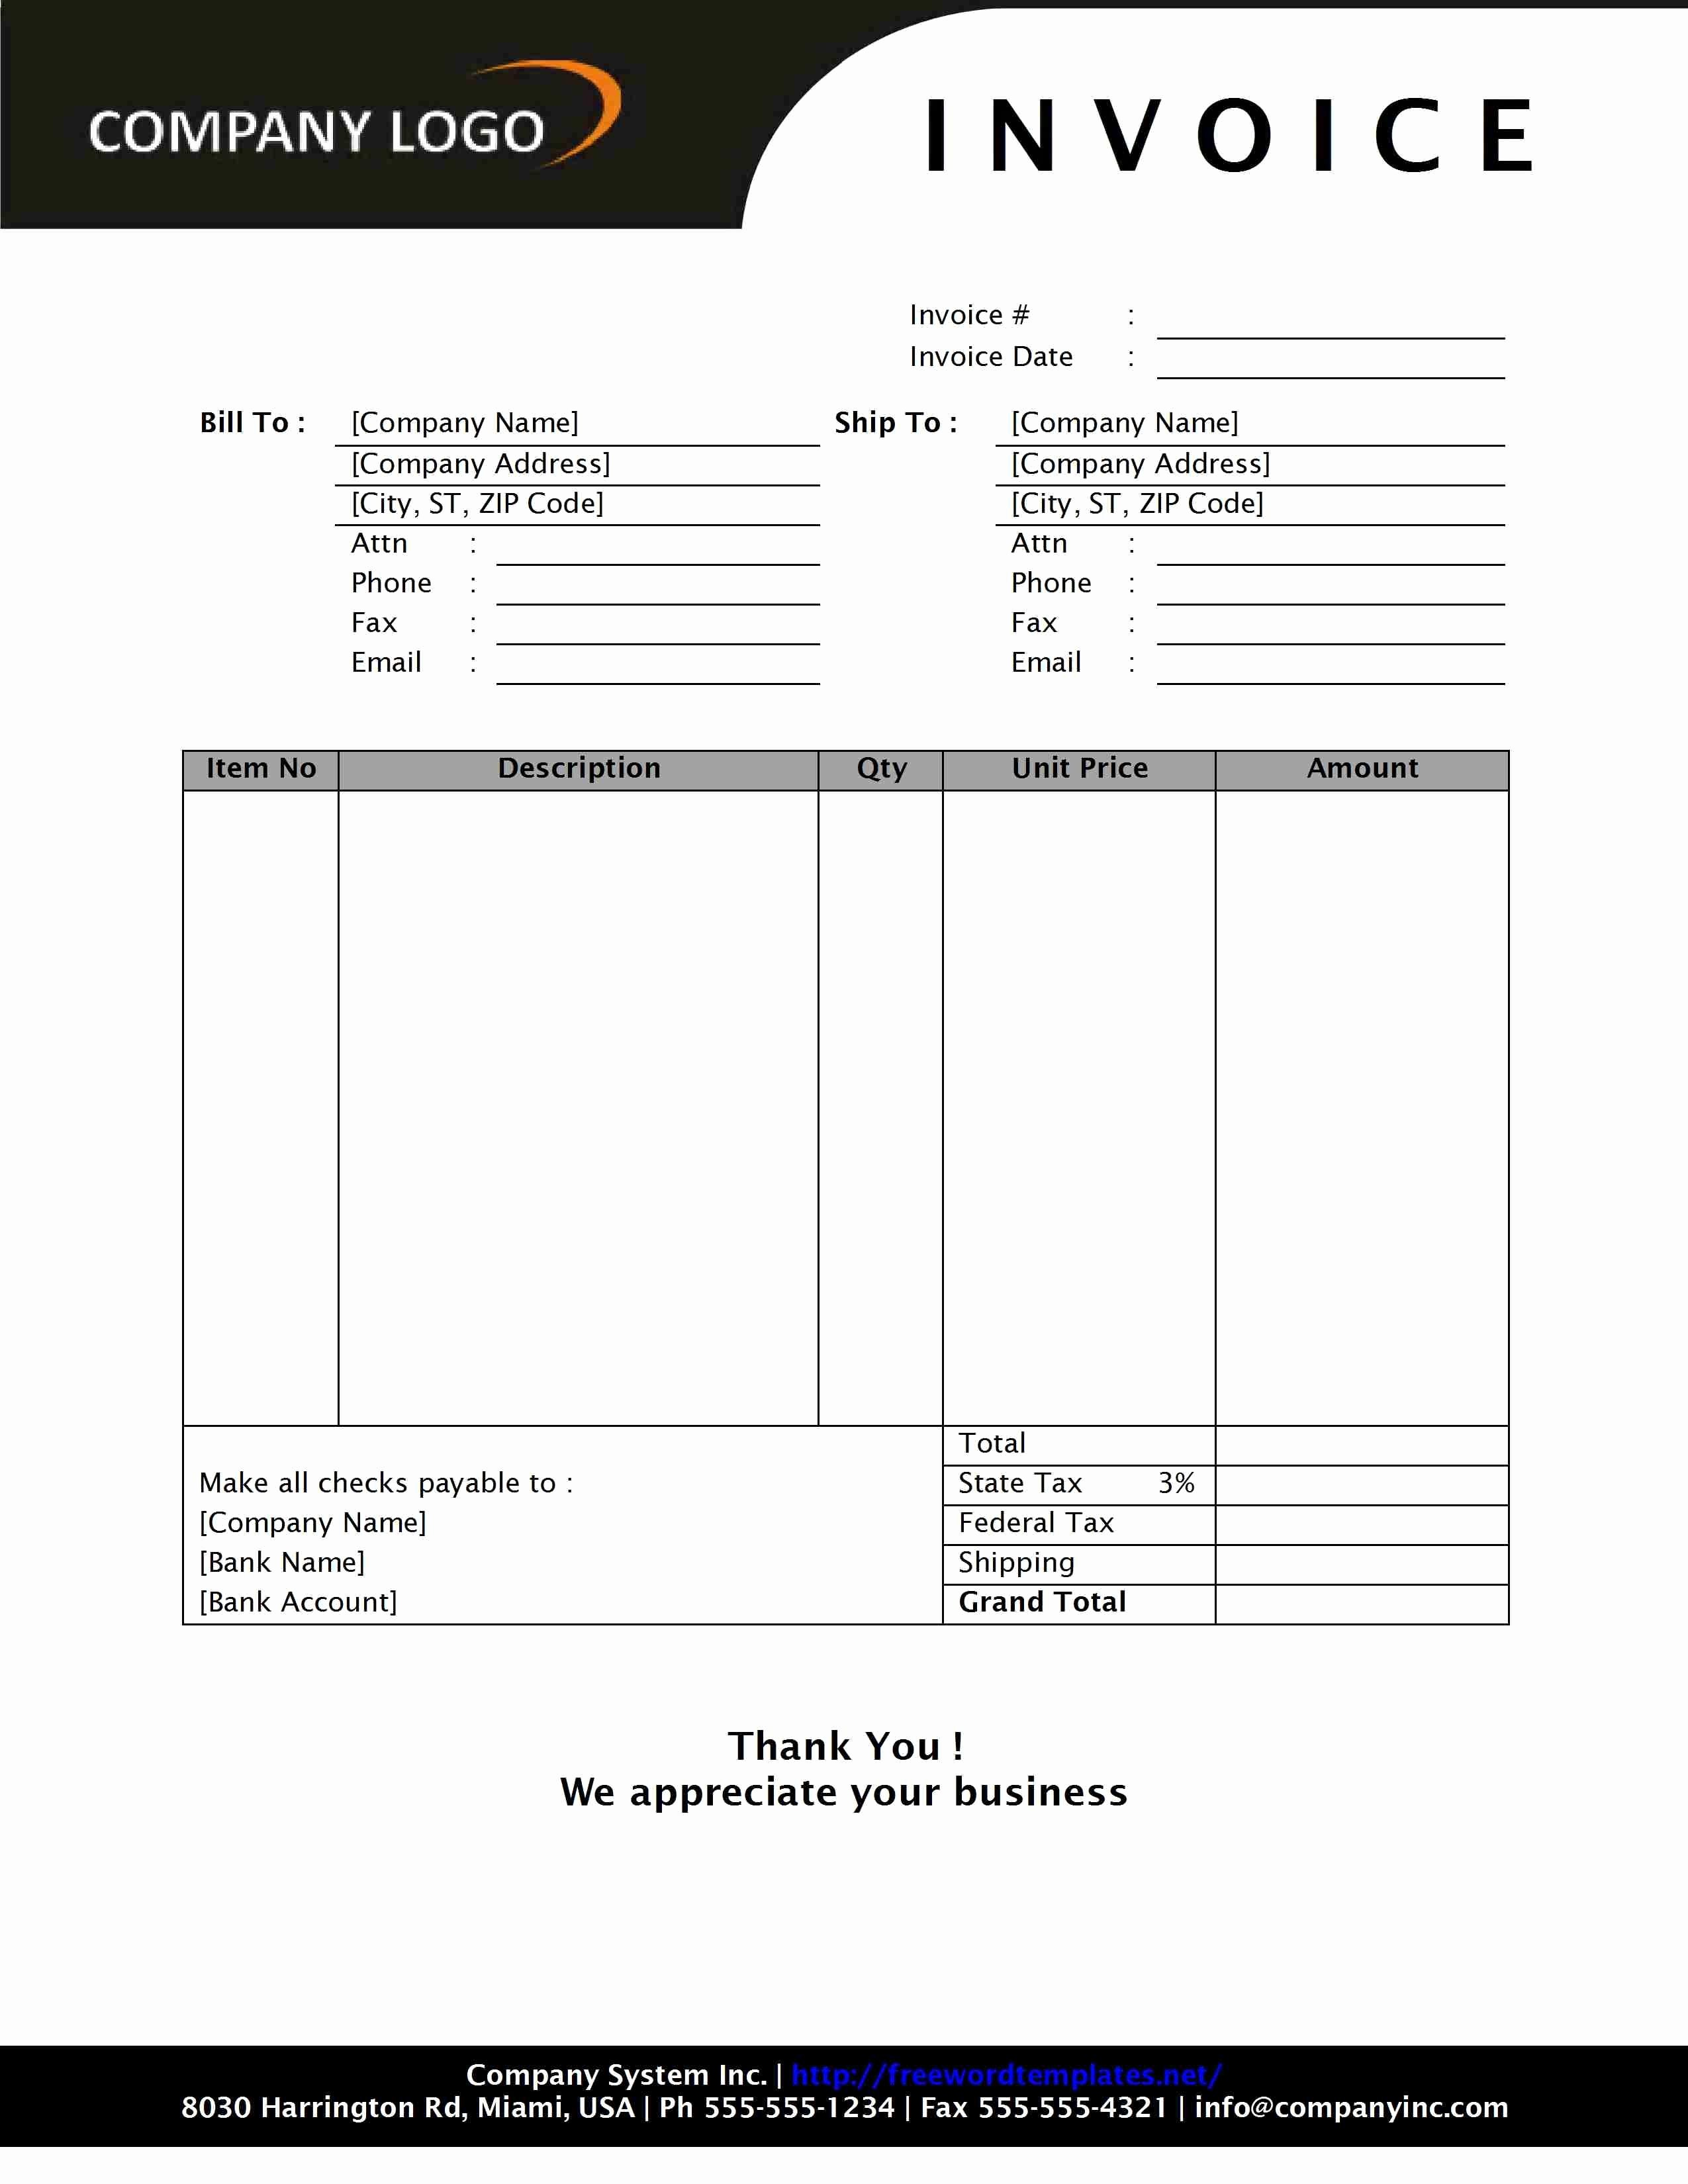 Excel Invoice Template with Logo Best Of format Of An Invoice 8 format for Sales Invoice and Tips